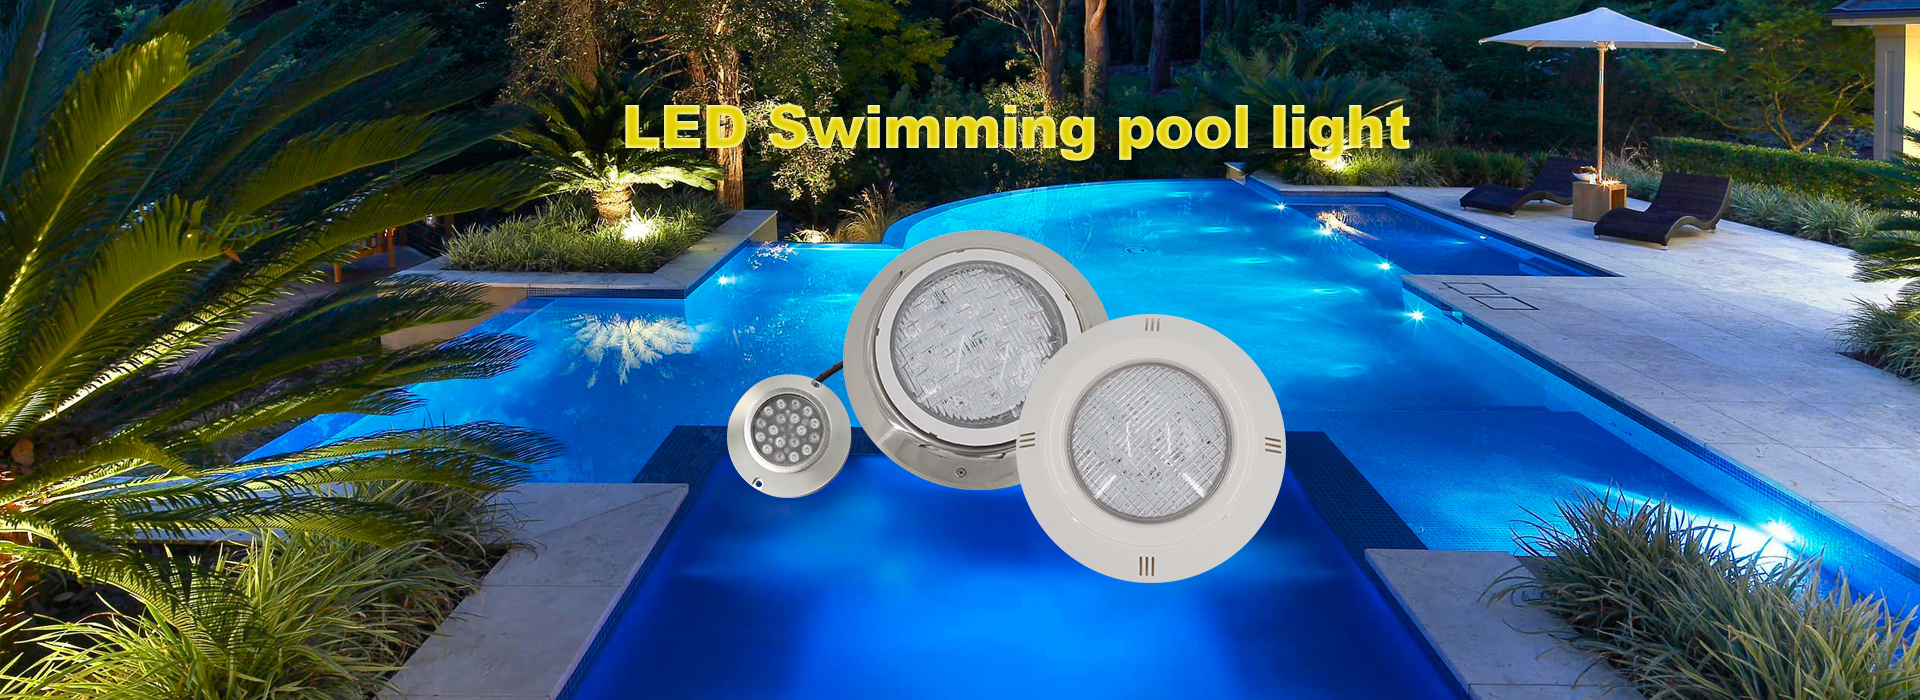 Sales Promotion Led Swimming Pool Lights